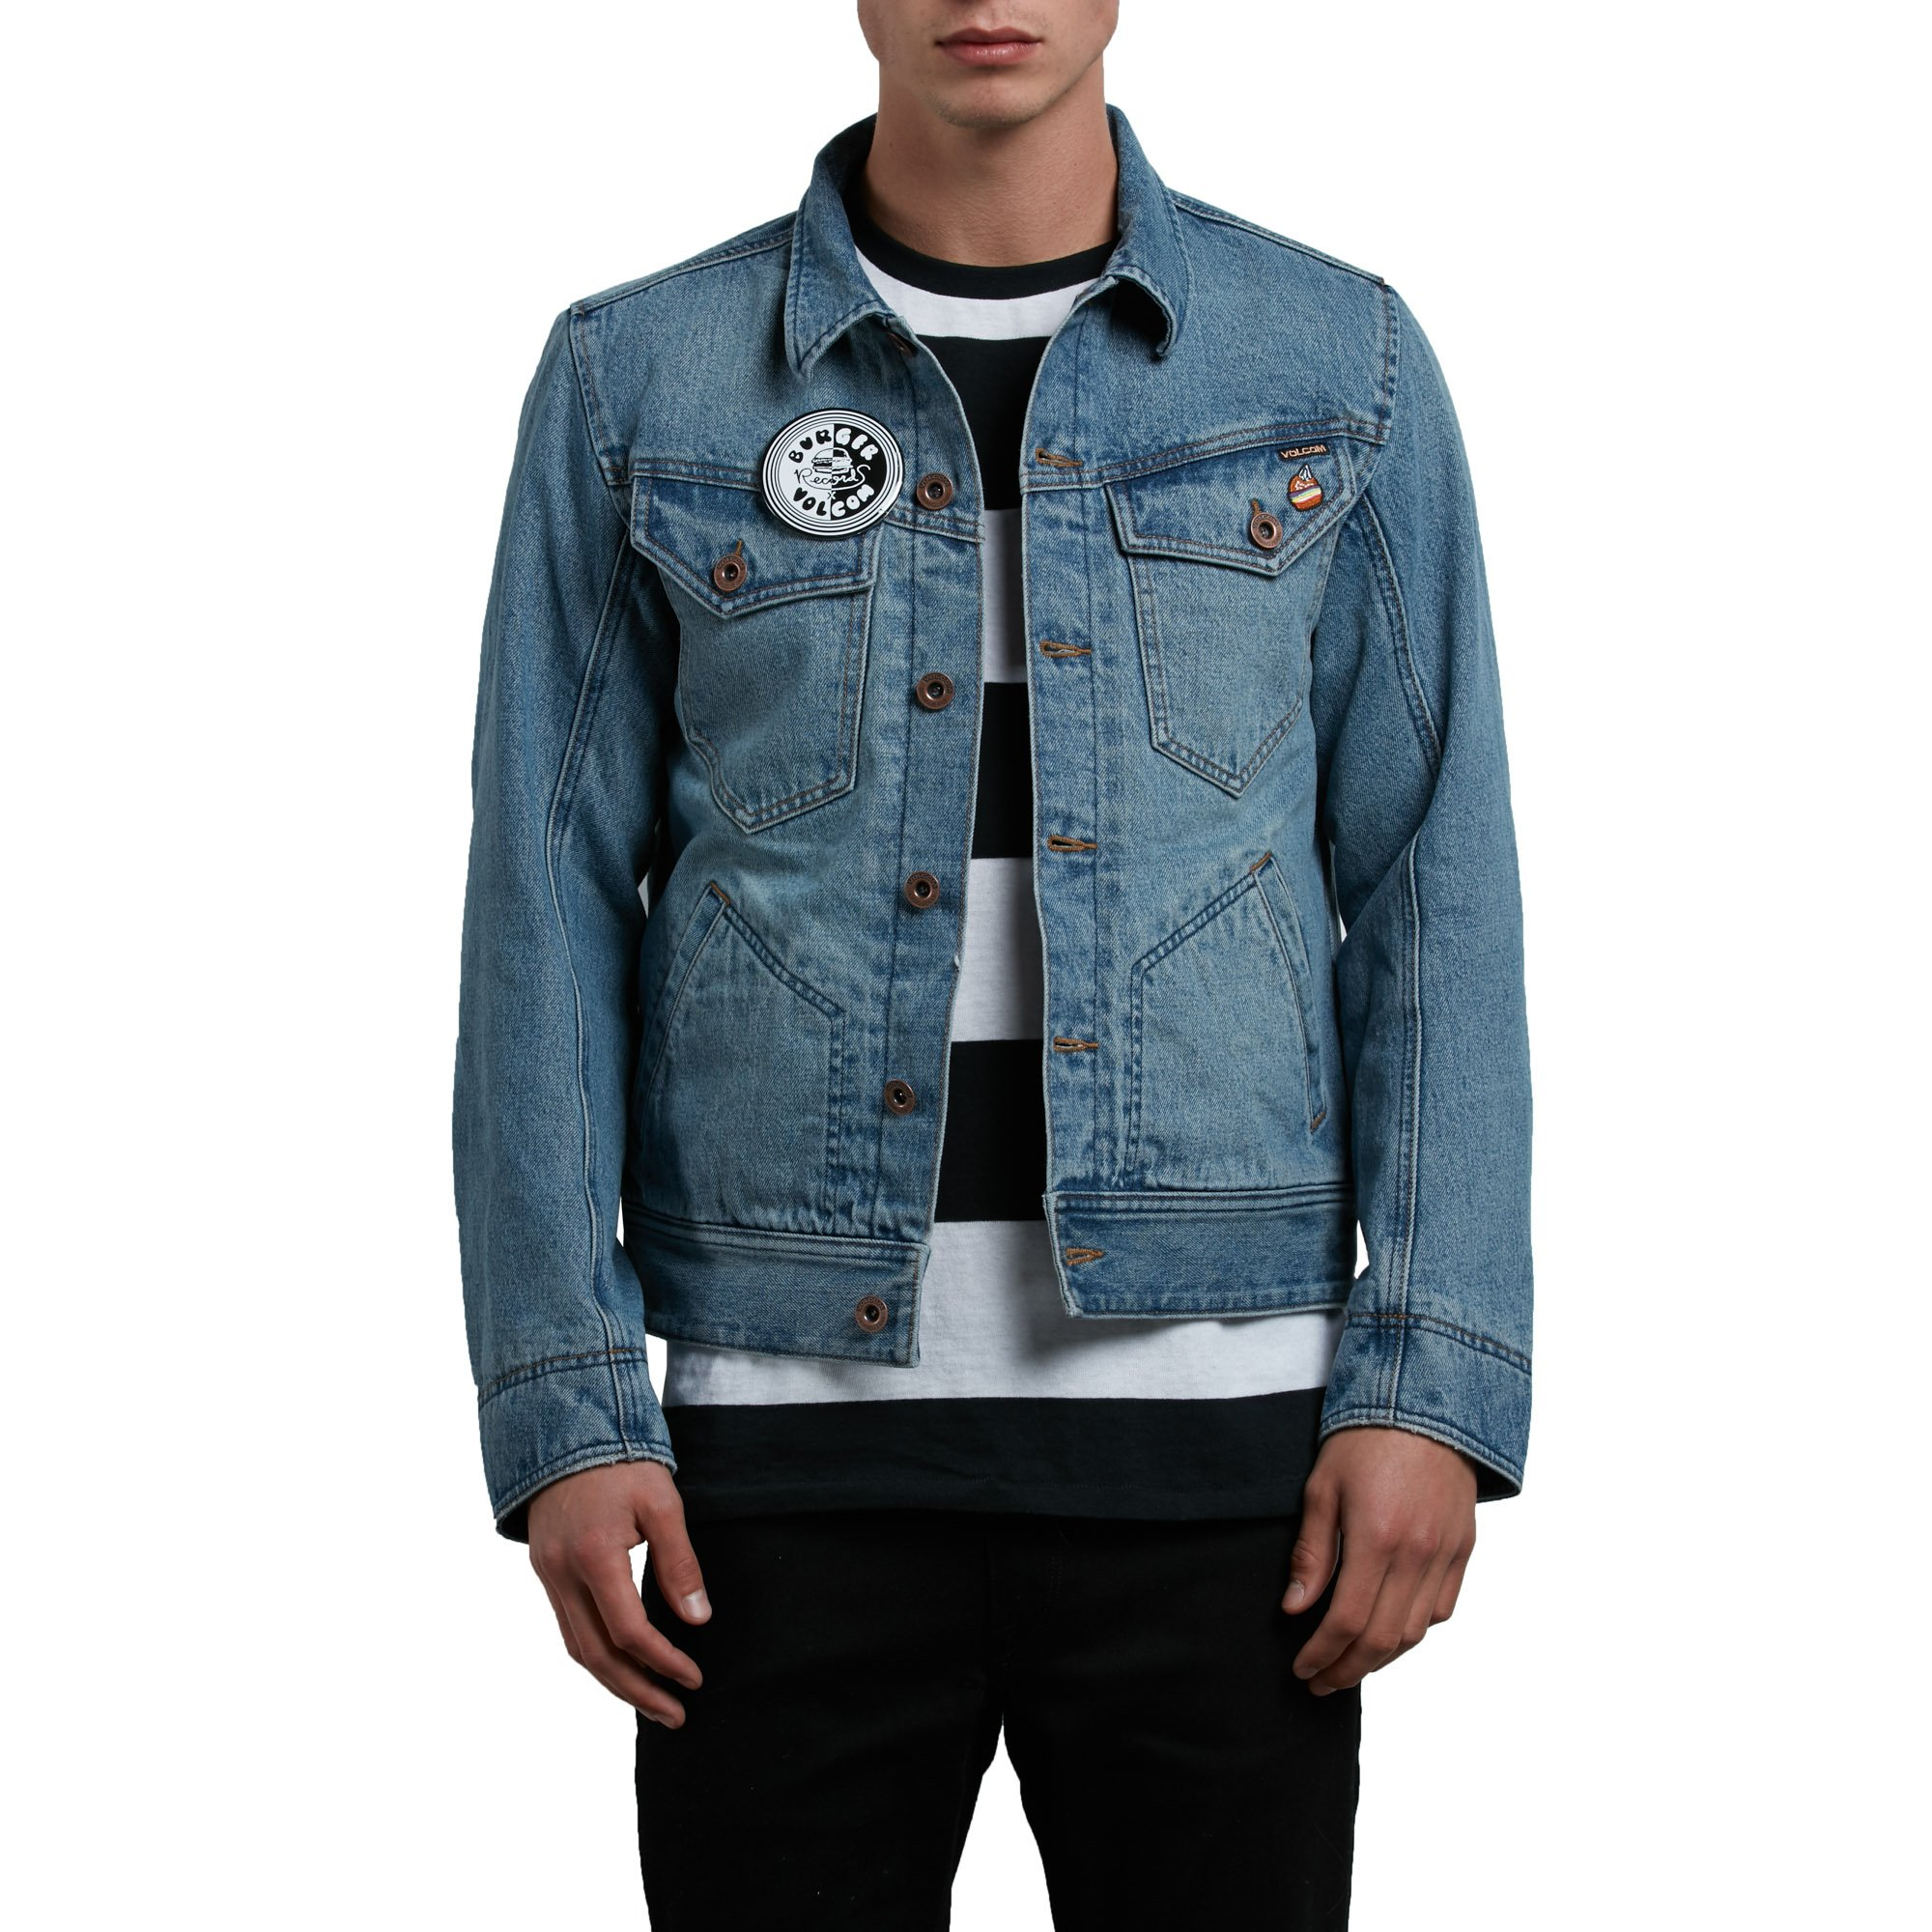 Volcom Men's Burger Record X Denim Jacket, Wrecked Indigo, L